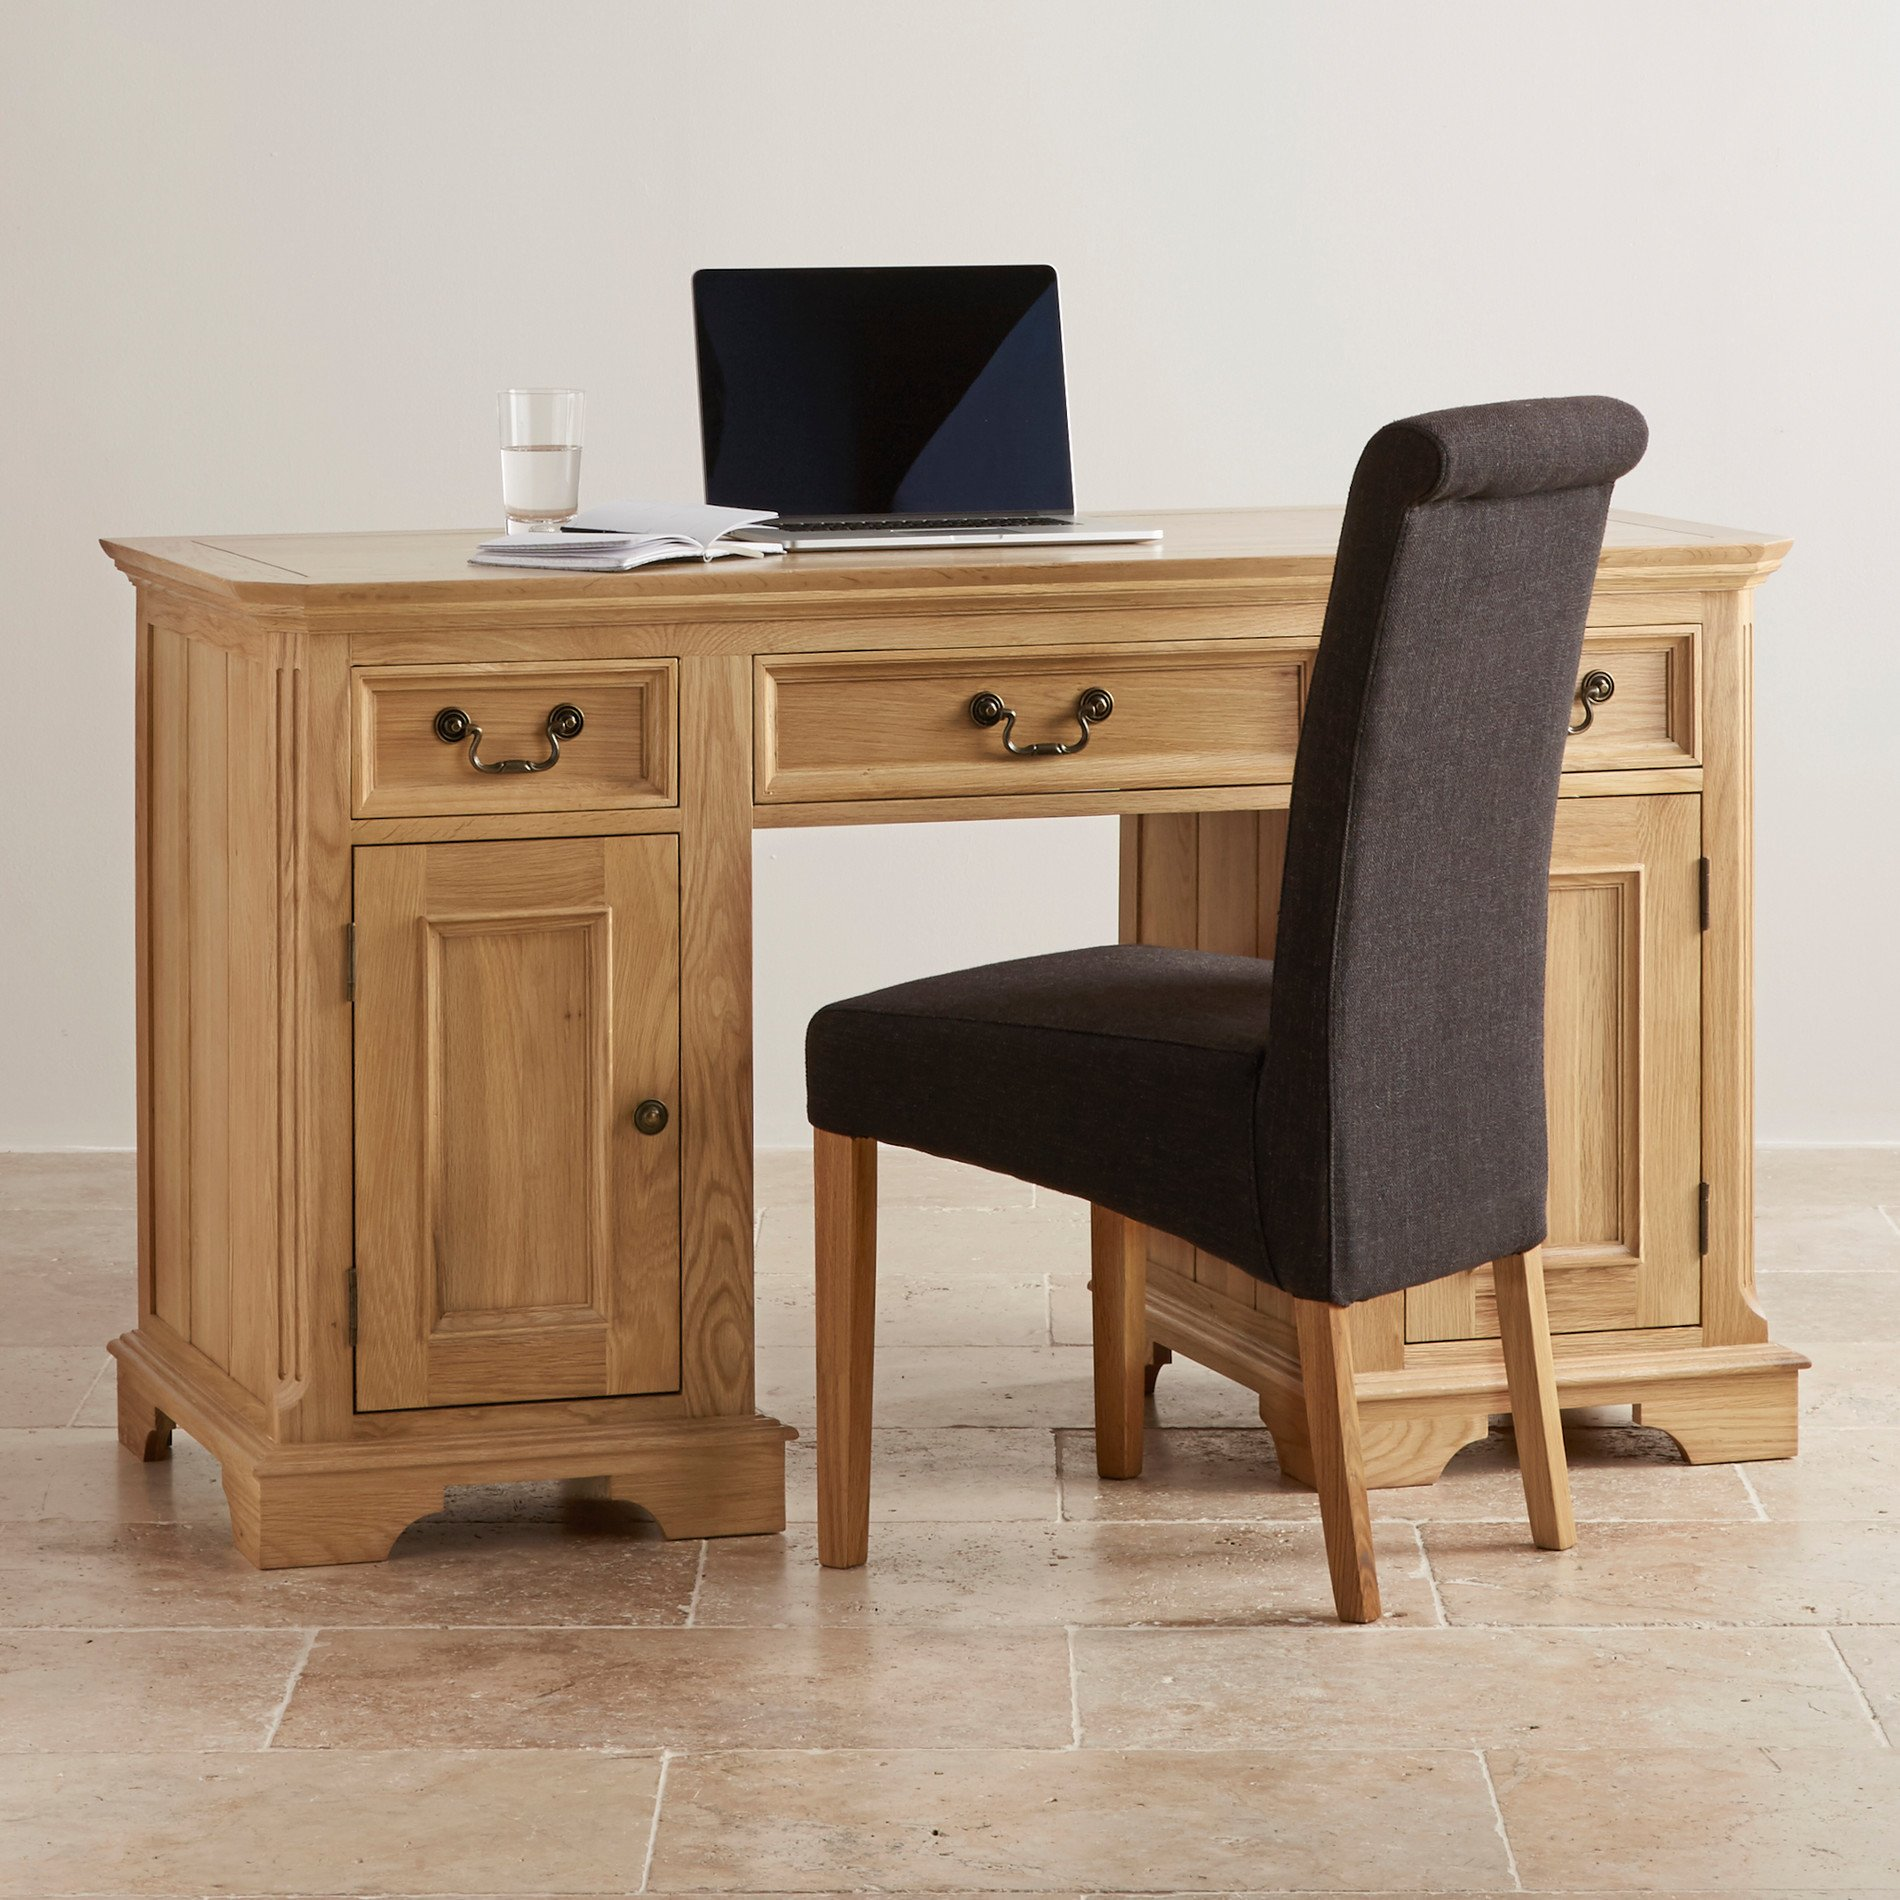 edinburgh natural solid oak computer desk